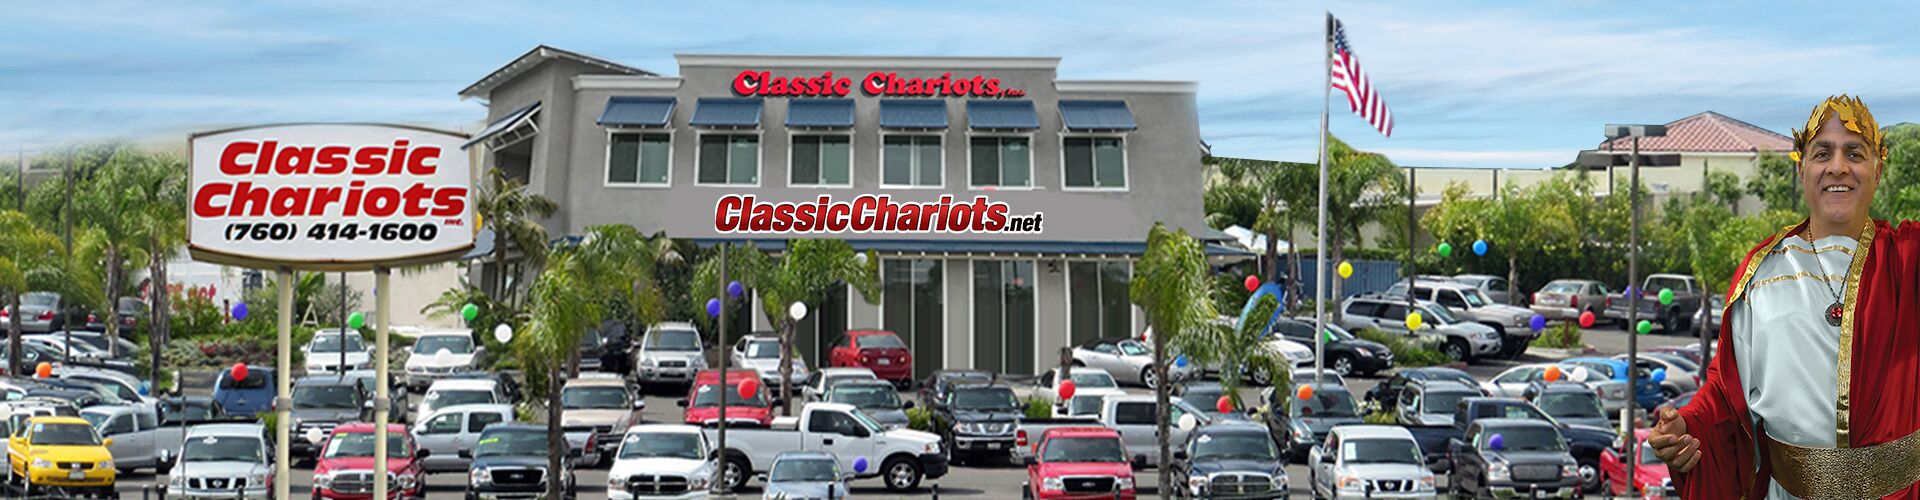 Welcome to Classic Chariots